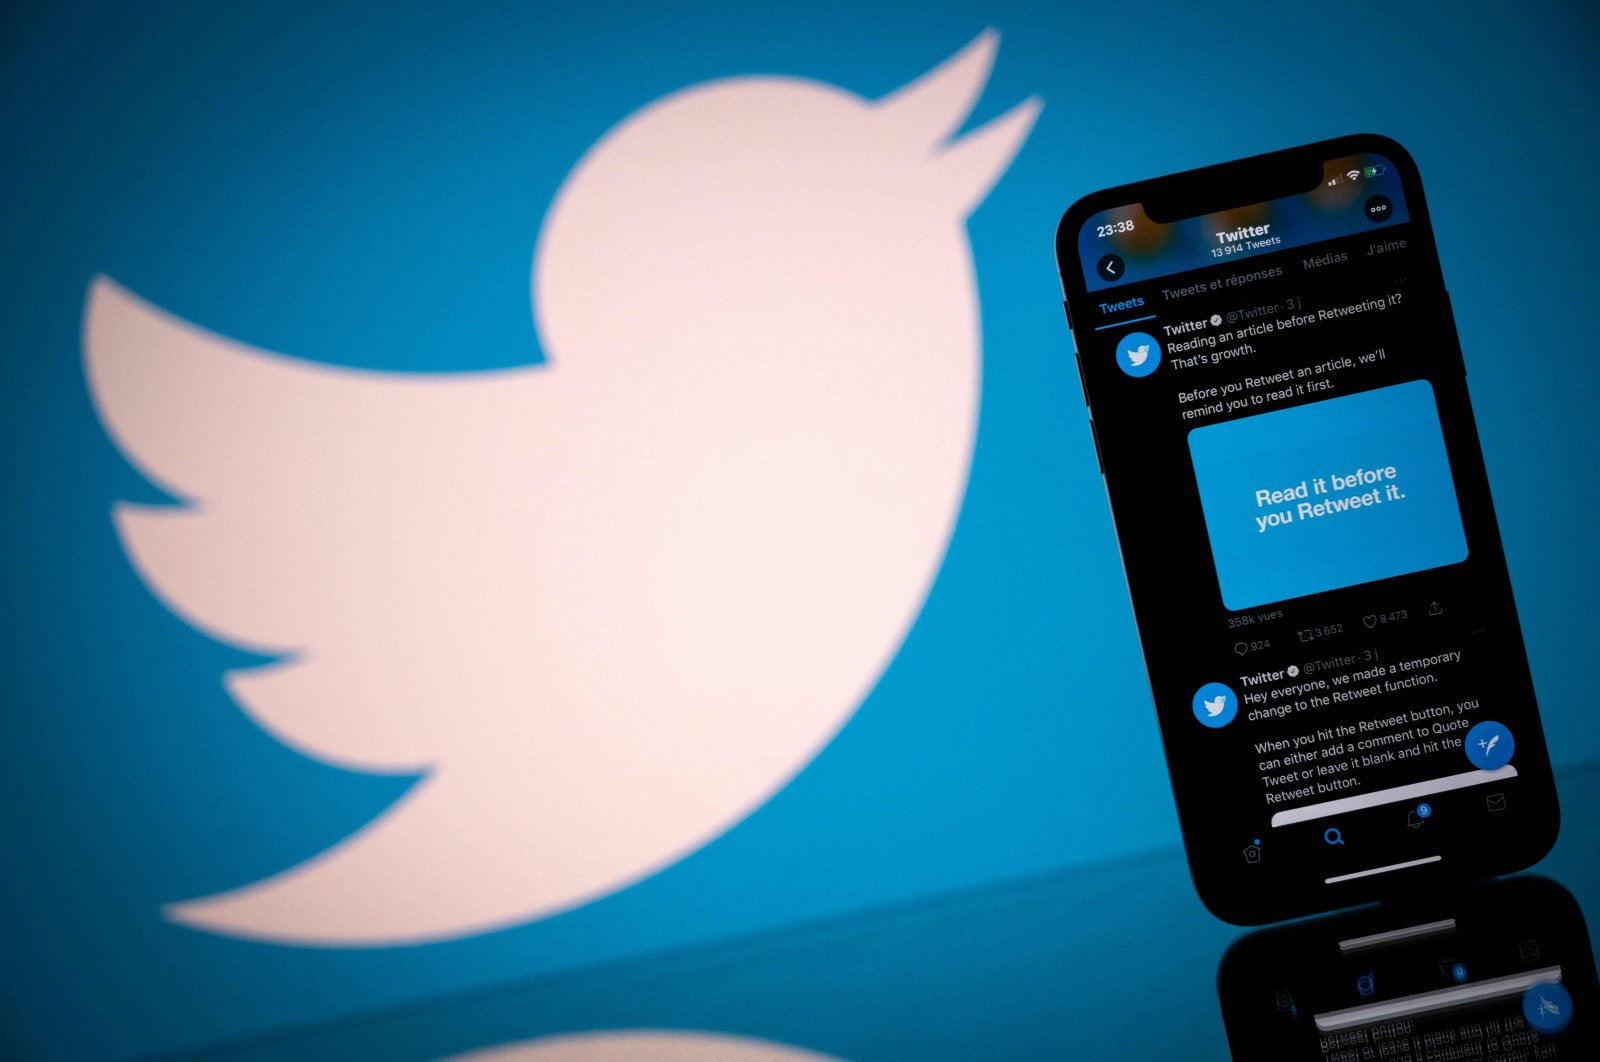 The logo of U.S. social network Twitter is displayed on the screen of a smartphone and a tablet in Toulouse, southern France, Oct. 26, 2020. (AFP Photo)